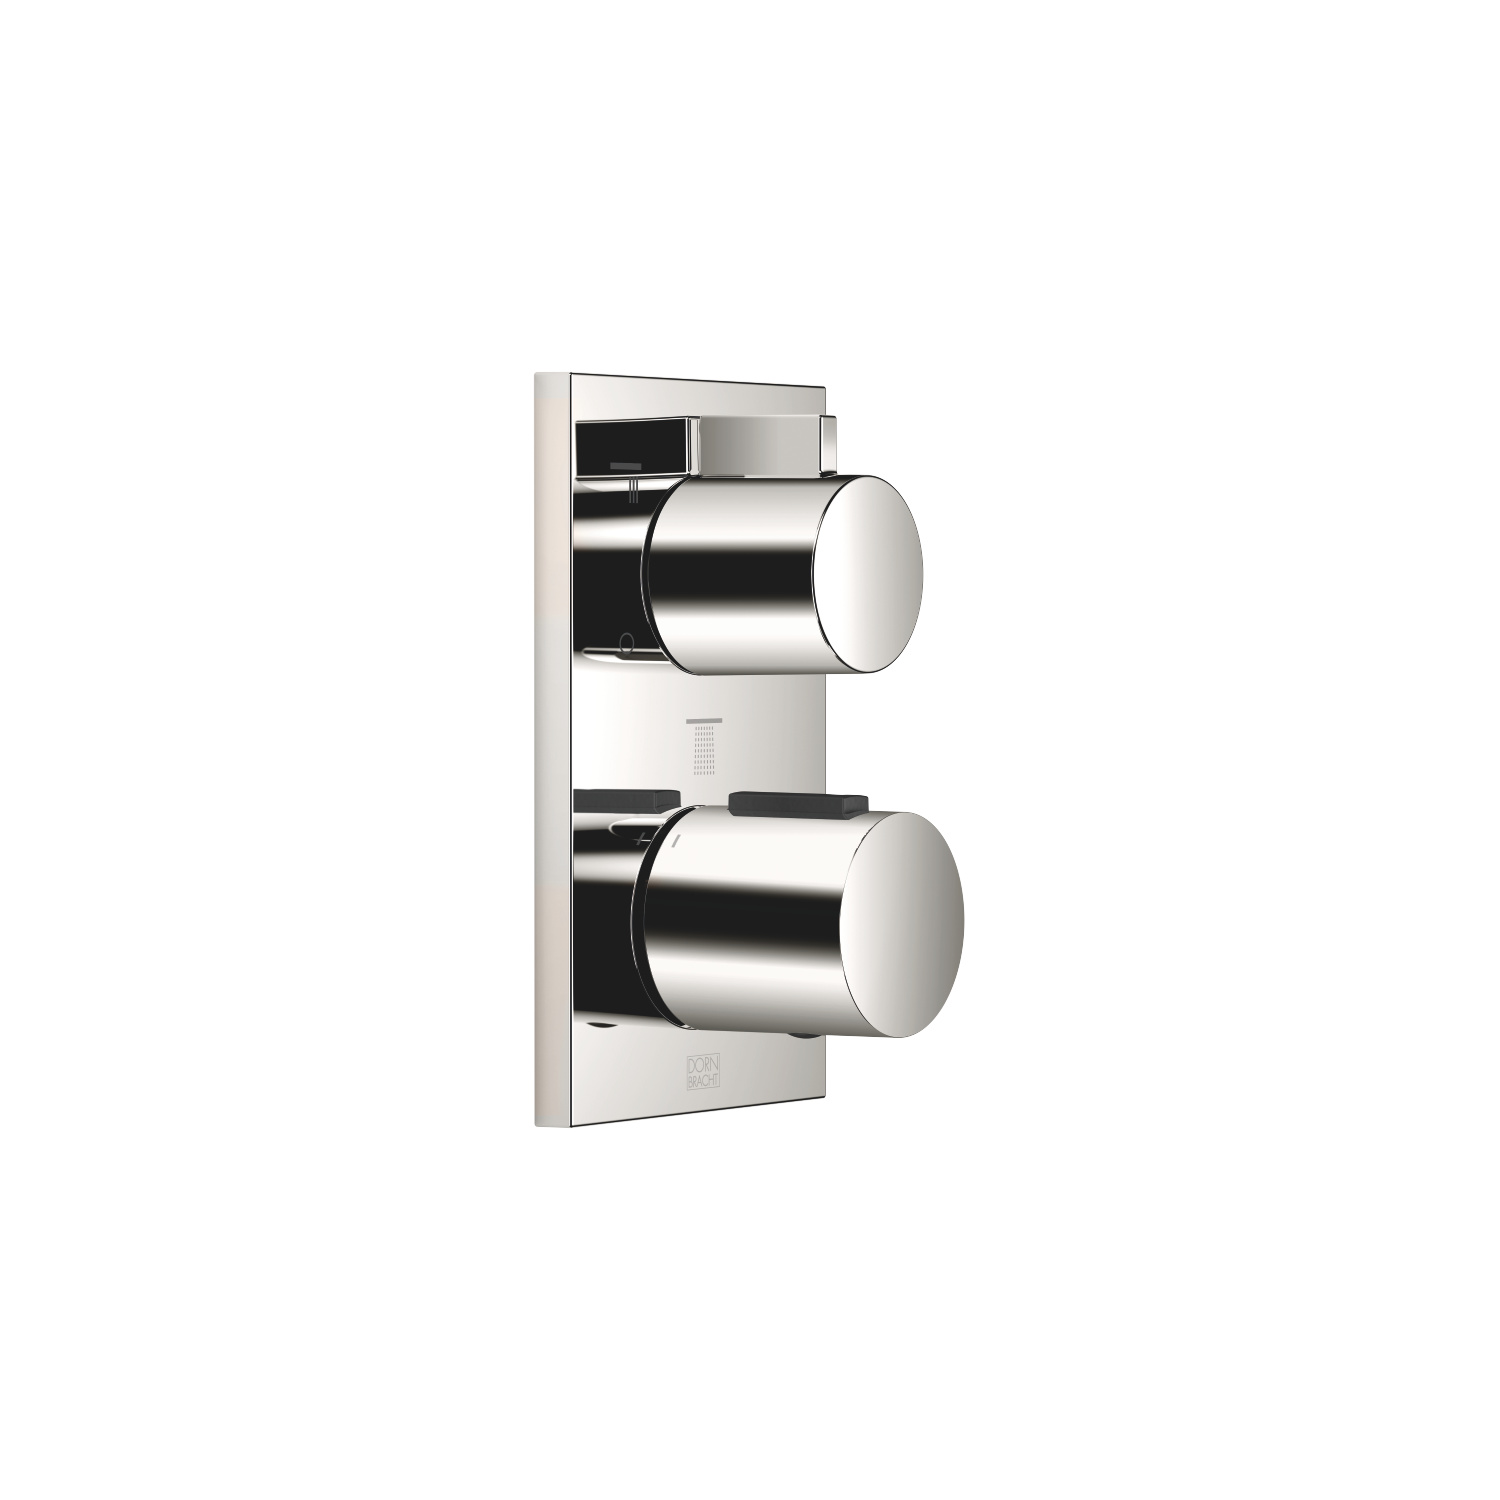 Concealed thermostat with three-way volume control - platinum